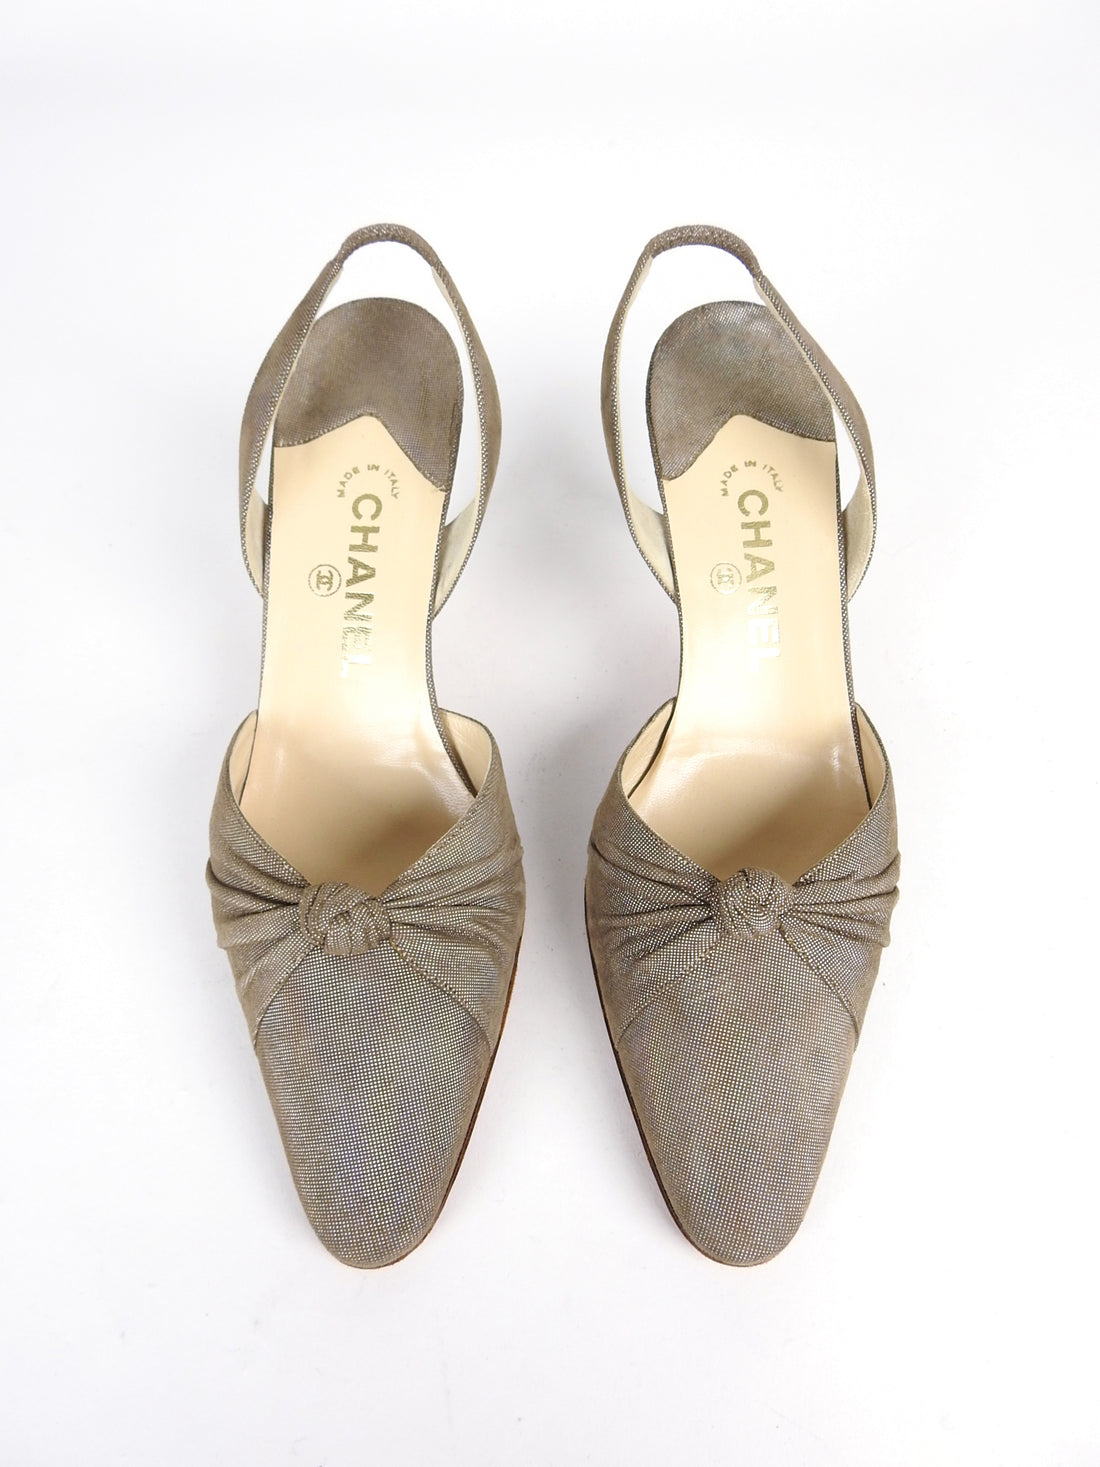 Chanel Taupe Knot Design Slingback Heels - 41